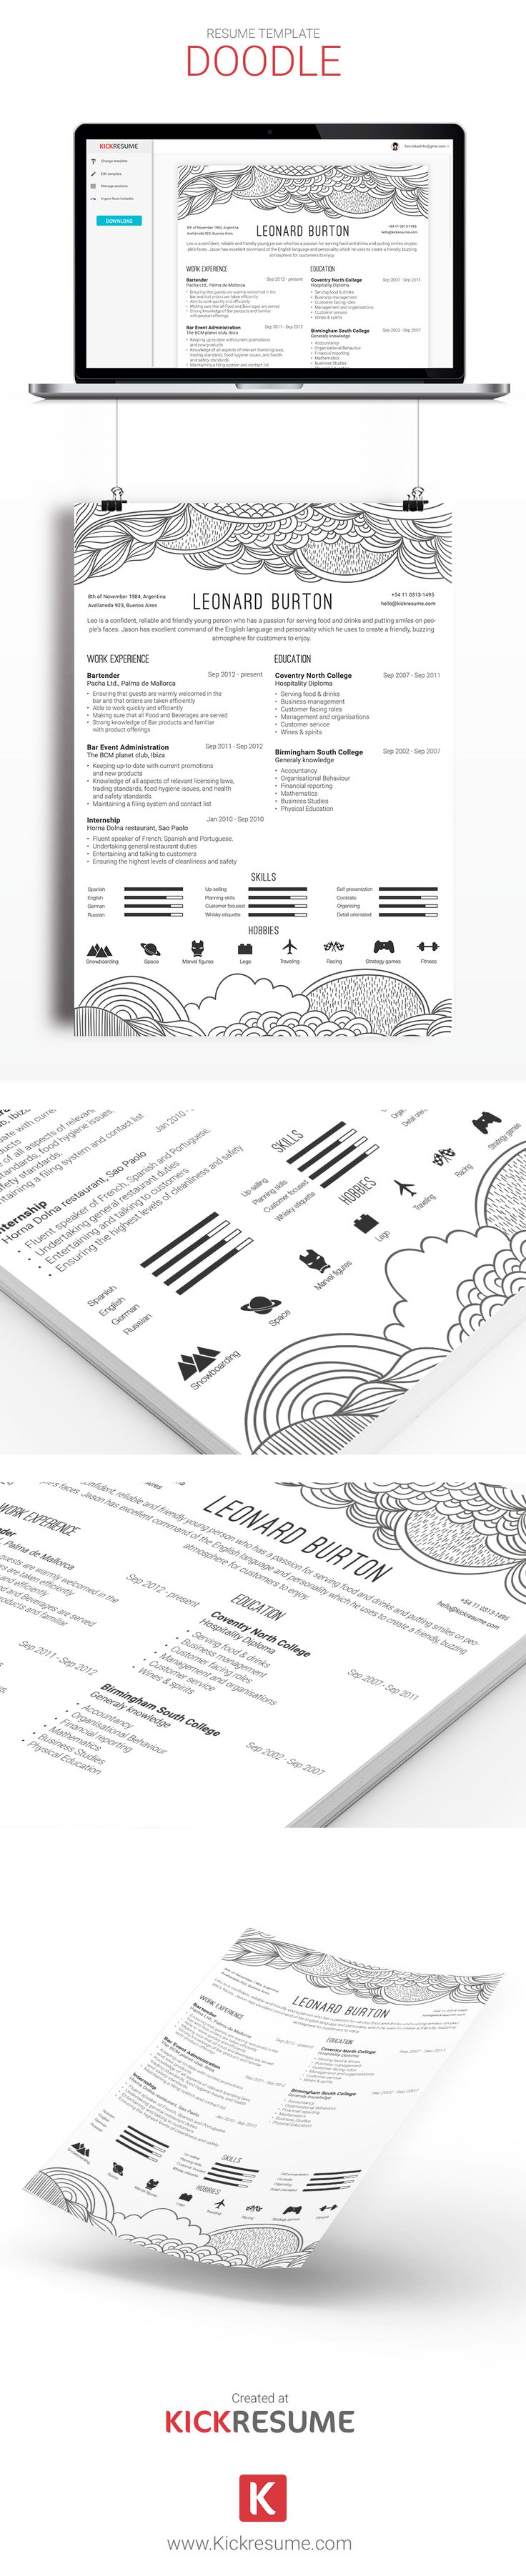 Excellent 1 Week Calendar Template Thin 1 Year Experienced Software Developer Resume Sample Round 1st Birthday Card Template 2 Binder Spine Template Youthful 2 Fold Brochure Template Green2 Page Brochure Template 25  Best Ideas About Sample Resume Templates On Pinterest | Free ..